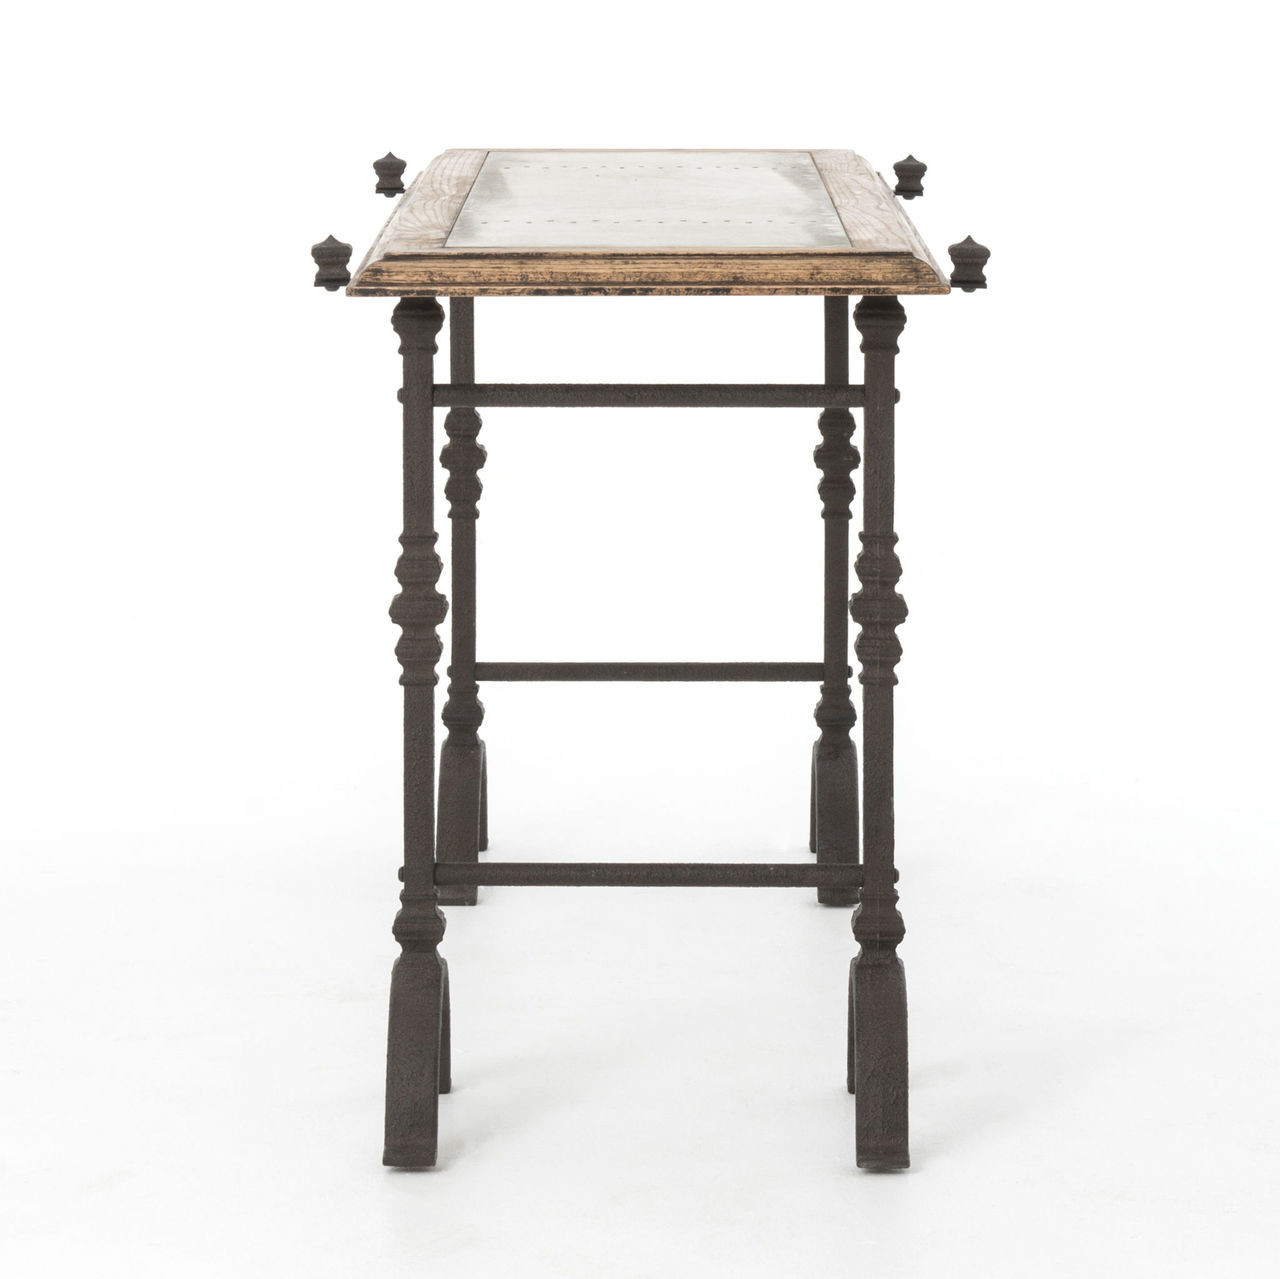 Rustic Iron Console Table ~ Industrial galvanized iron rustic oak foundry console